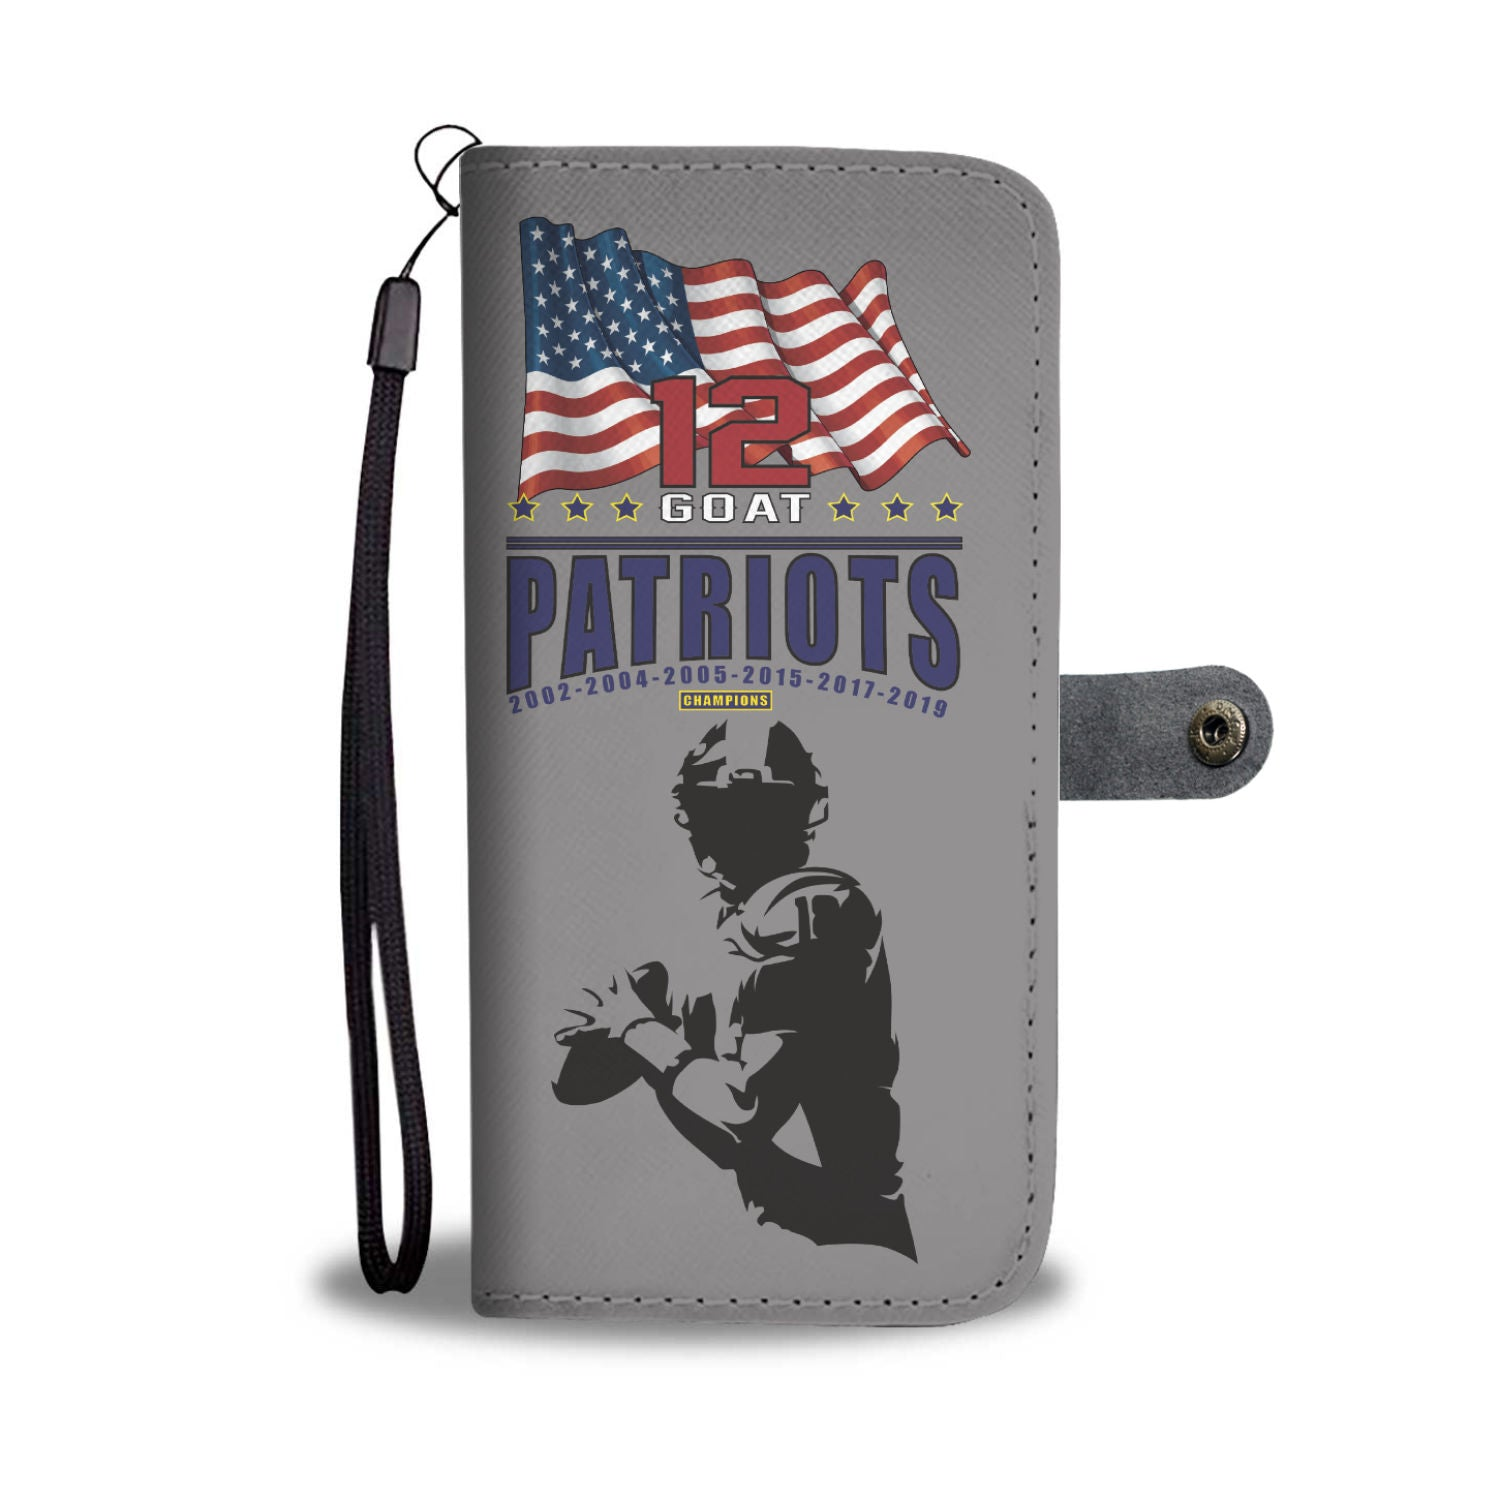 The GOAT & Patriots Wallet Case